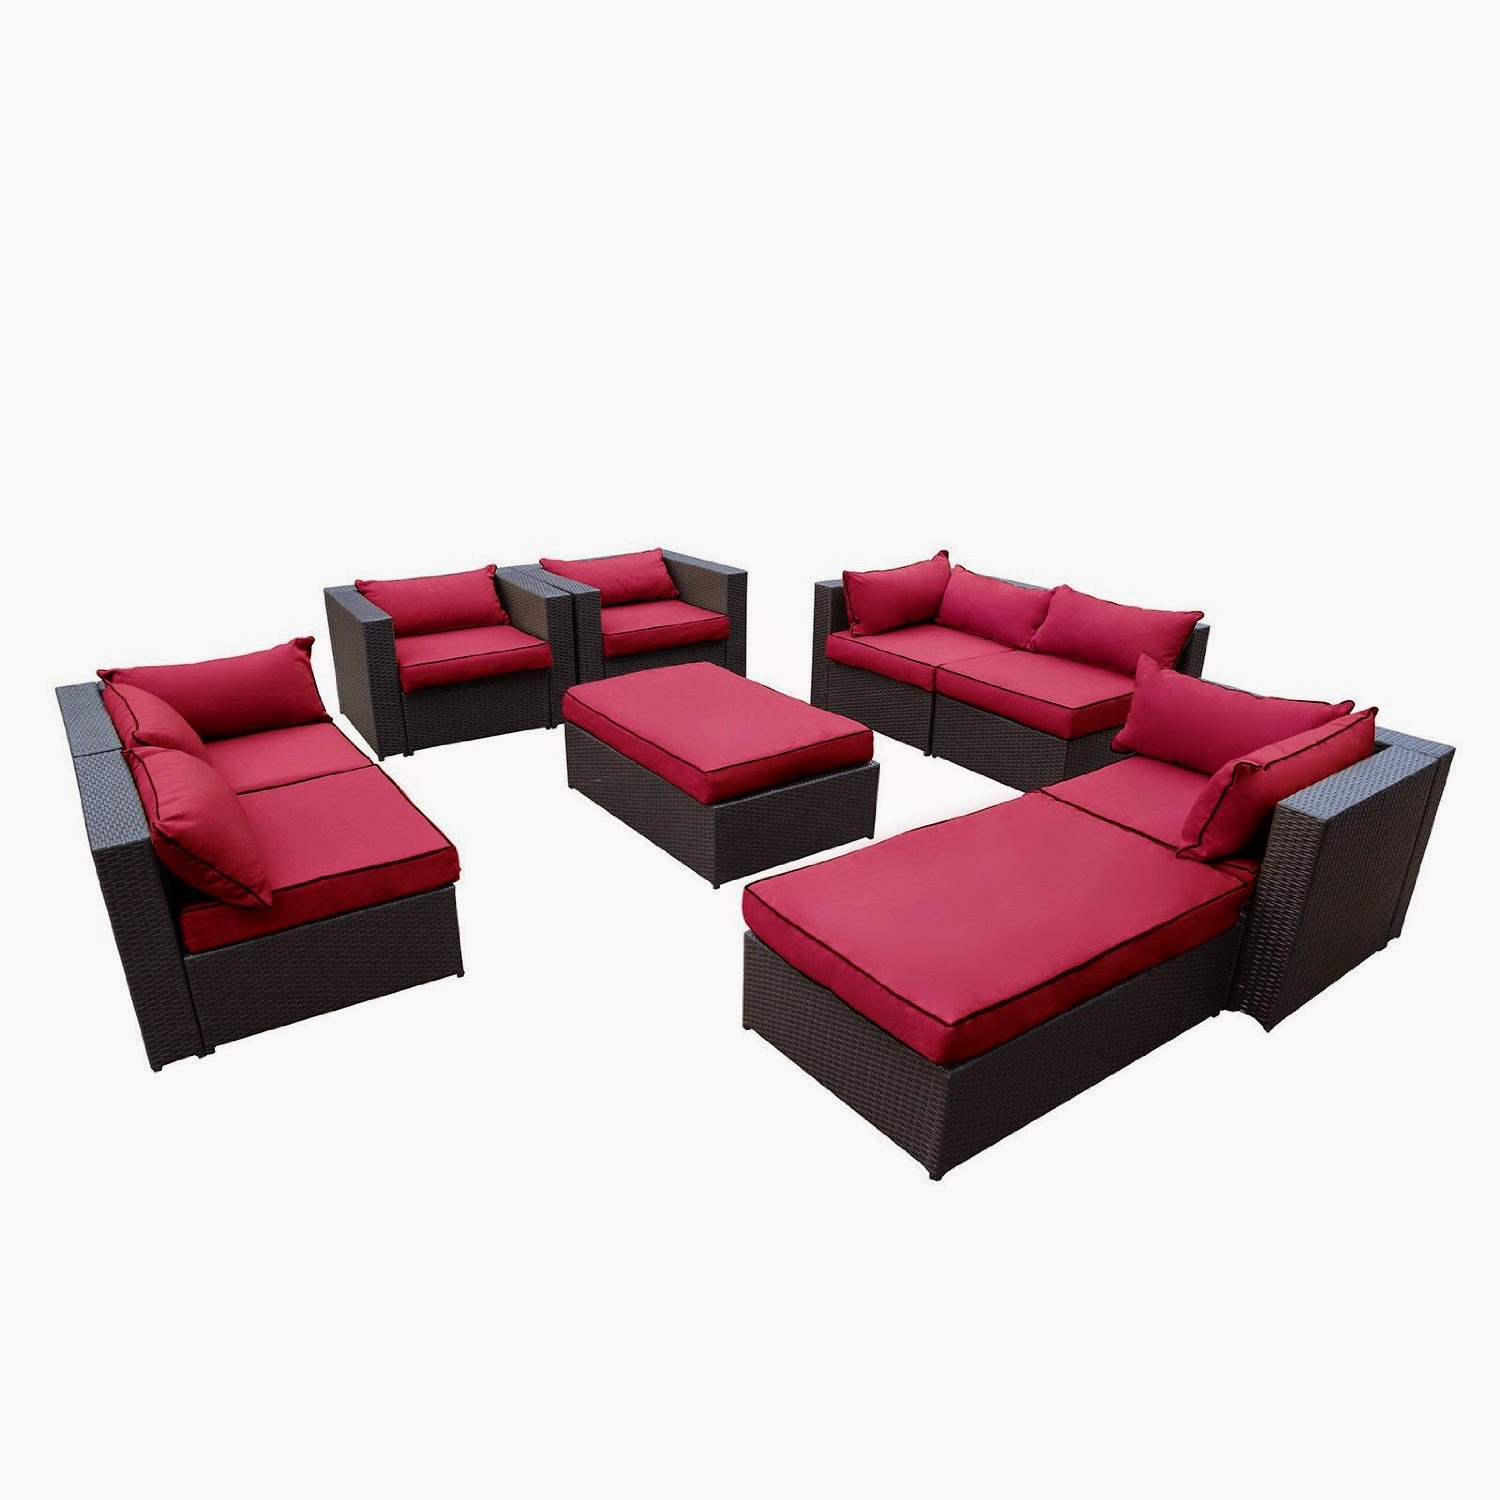 Rattan Outdoor Sofa Legs With S Patio Wicker Furniture Sectional